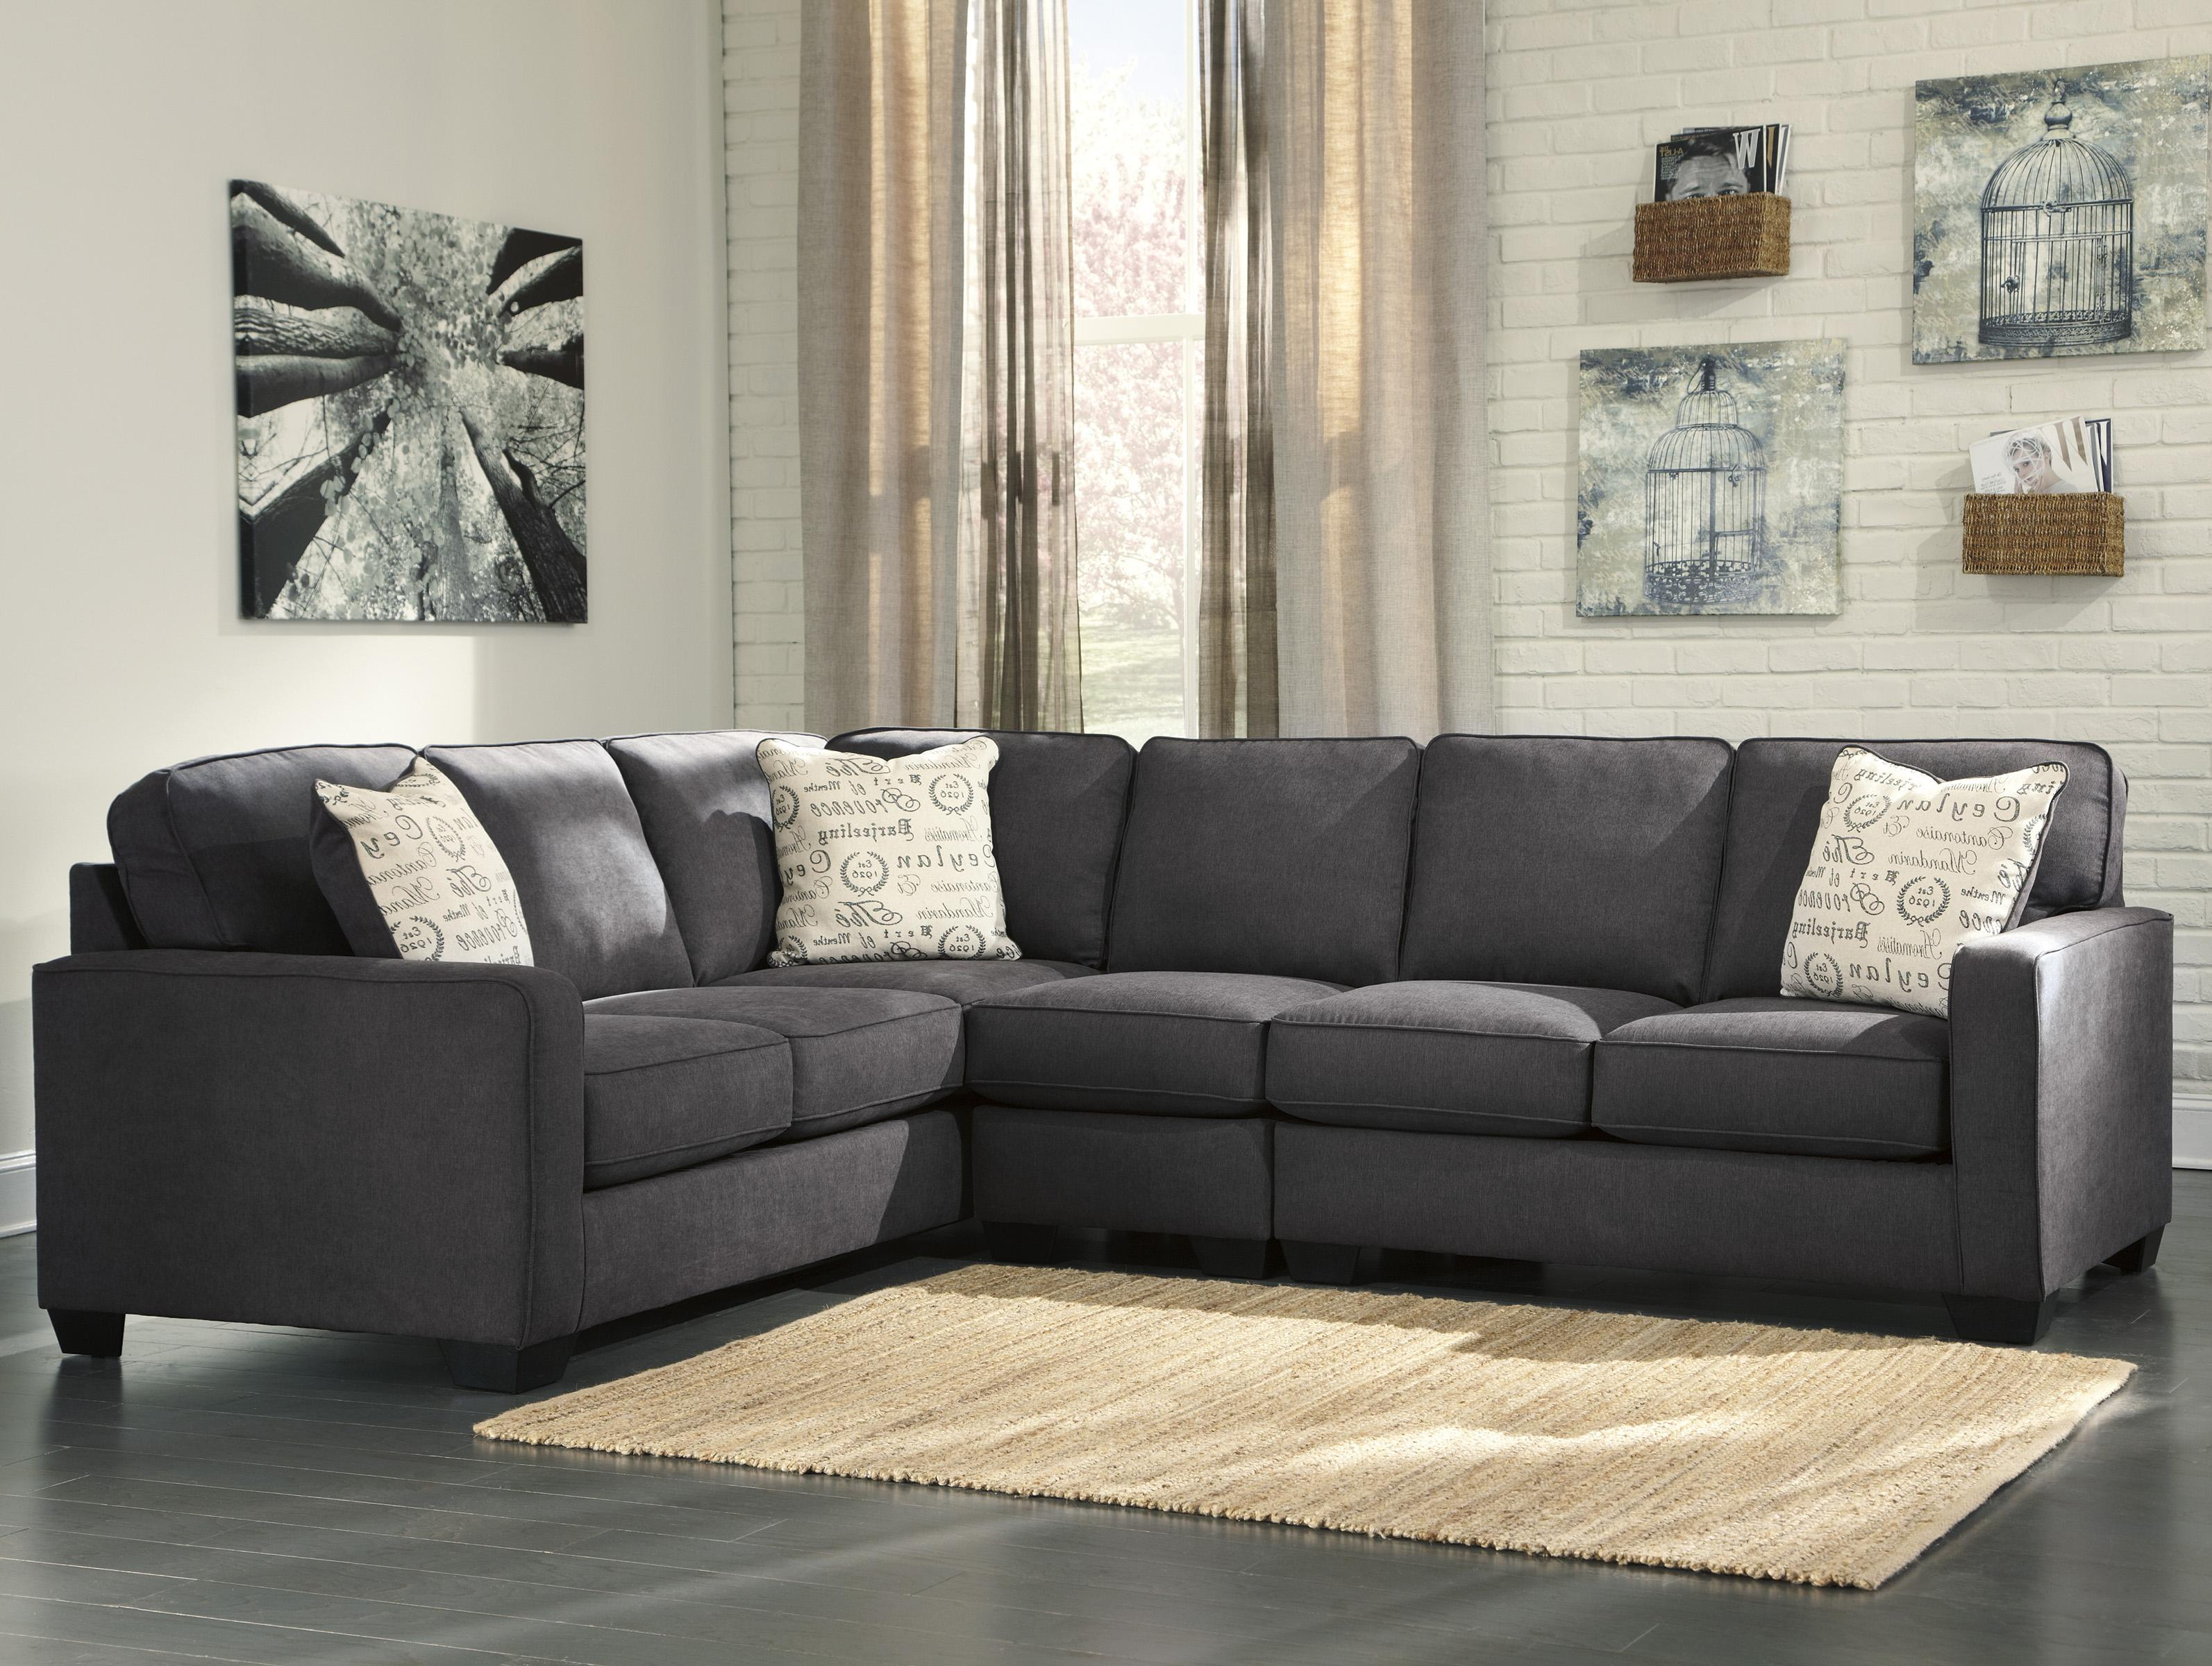 Best Kitchen Gallery: Ashley Signature Design Alenya Charcoal 3 Piece Sectional With of Loveseat Sectional  on rachelxblog.com